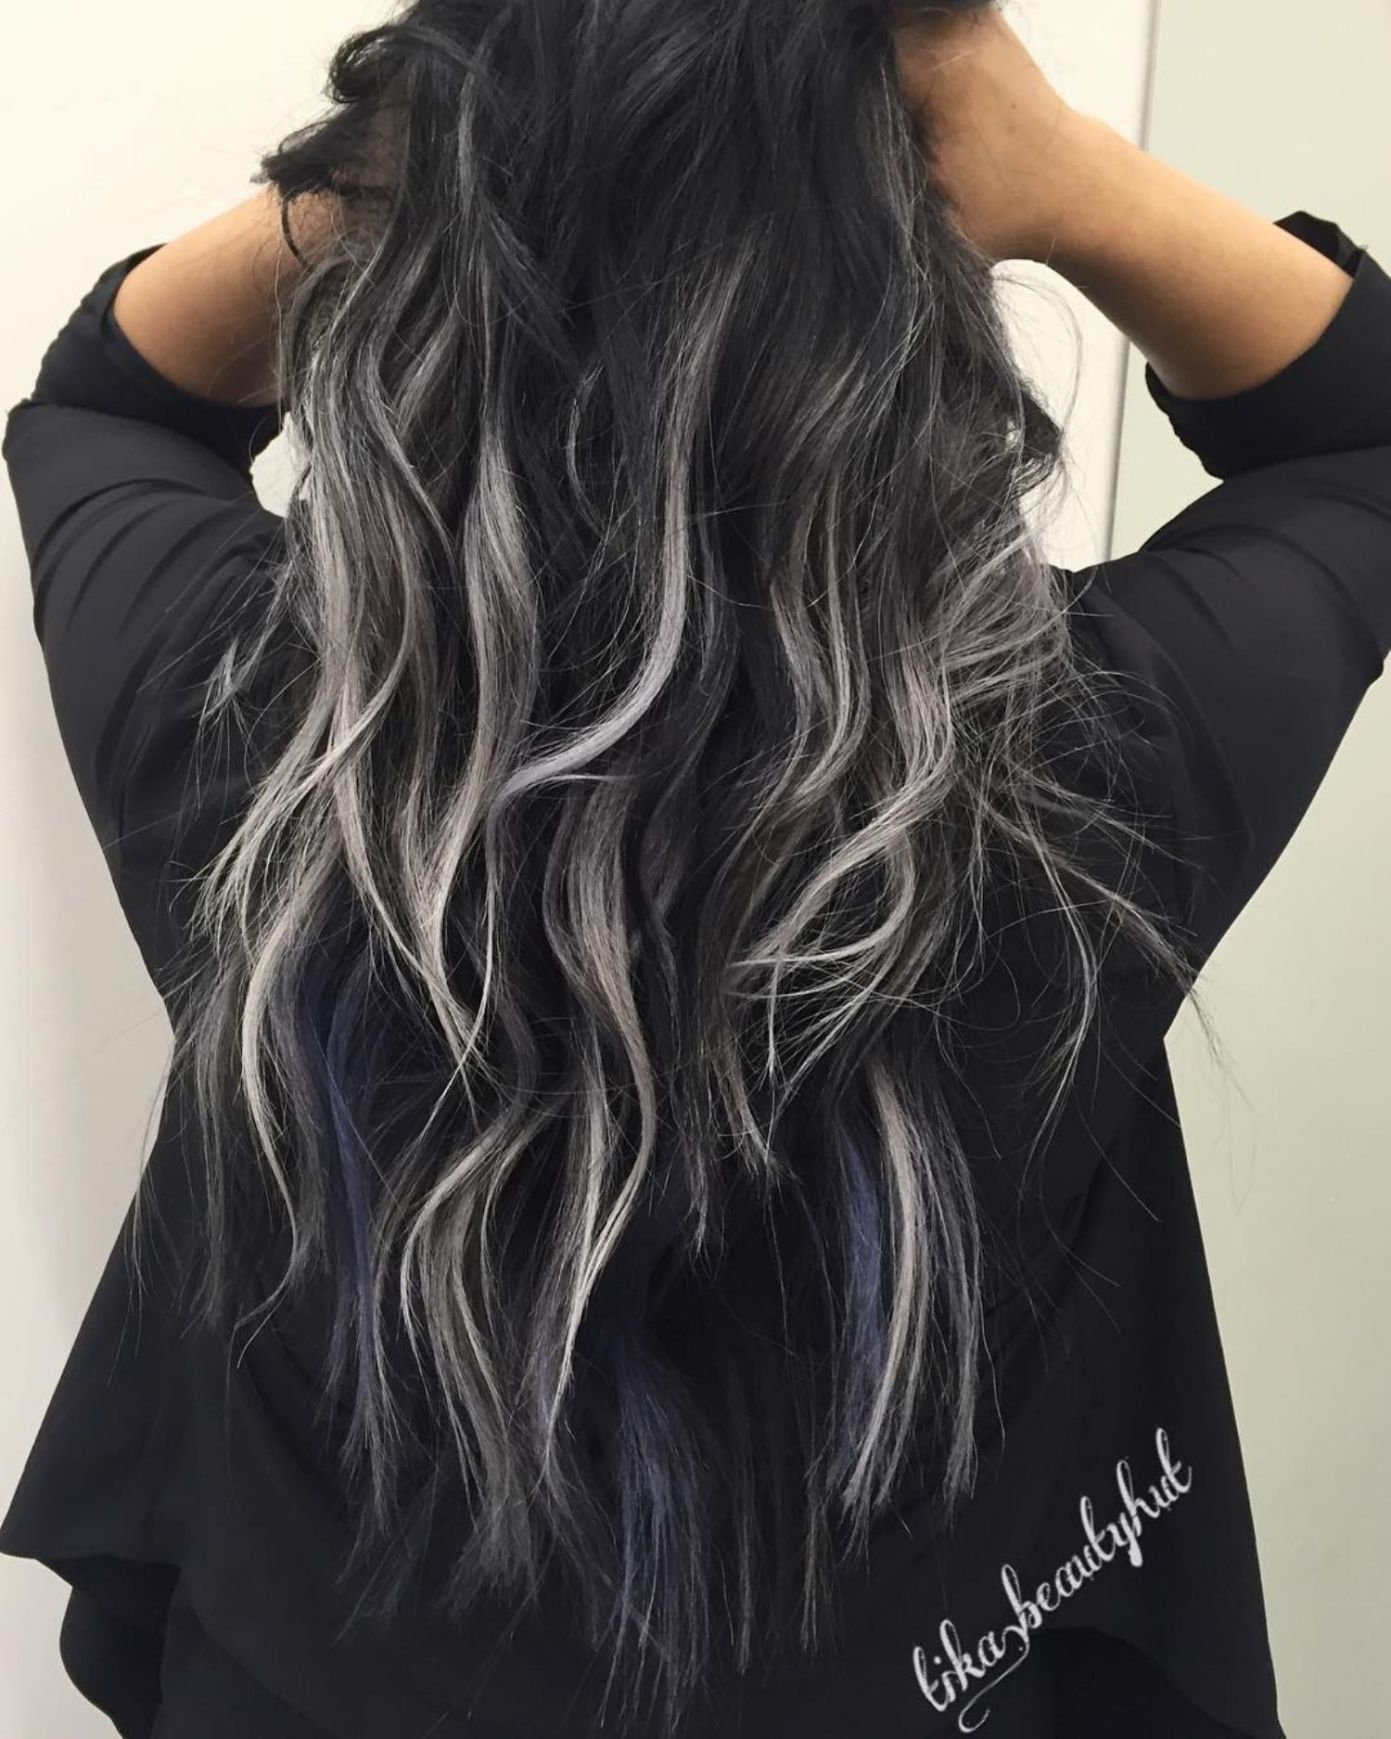 60 Shades Of Grey Silver And White Highlights For Eternal Youth Grey Ombre Hair Curly Hair Styles Black Hair With Highlights